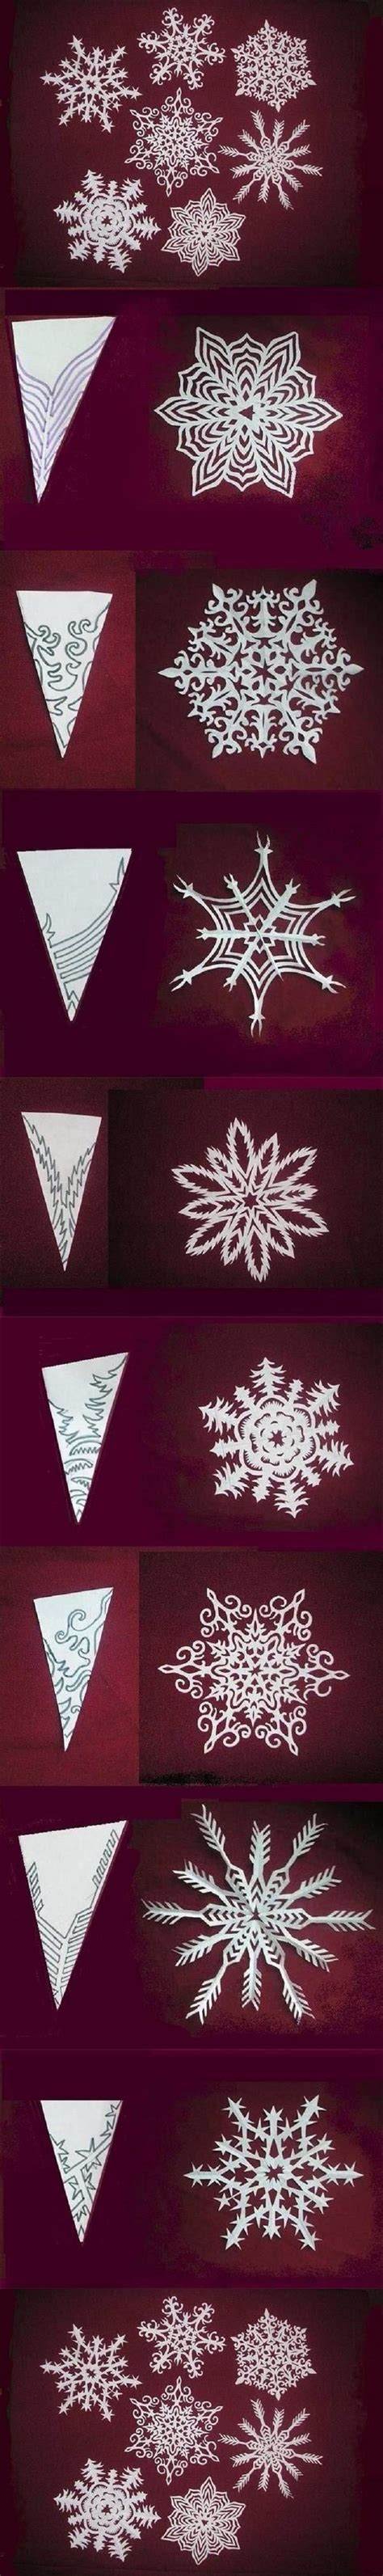 diy decorations paper snowflakes 31 and diy decorations paper